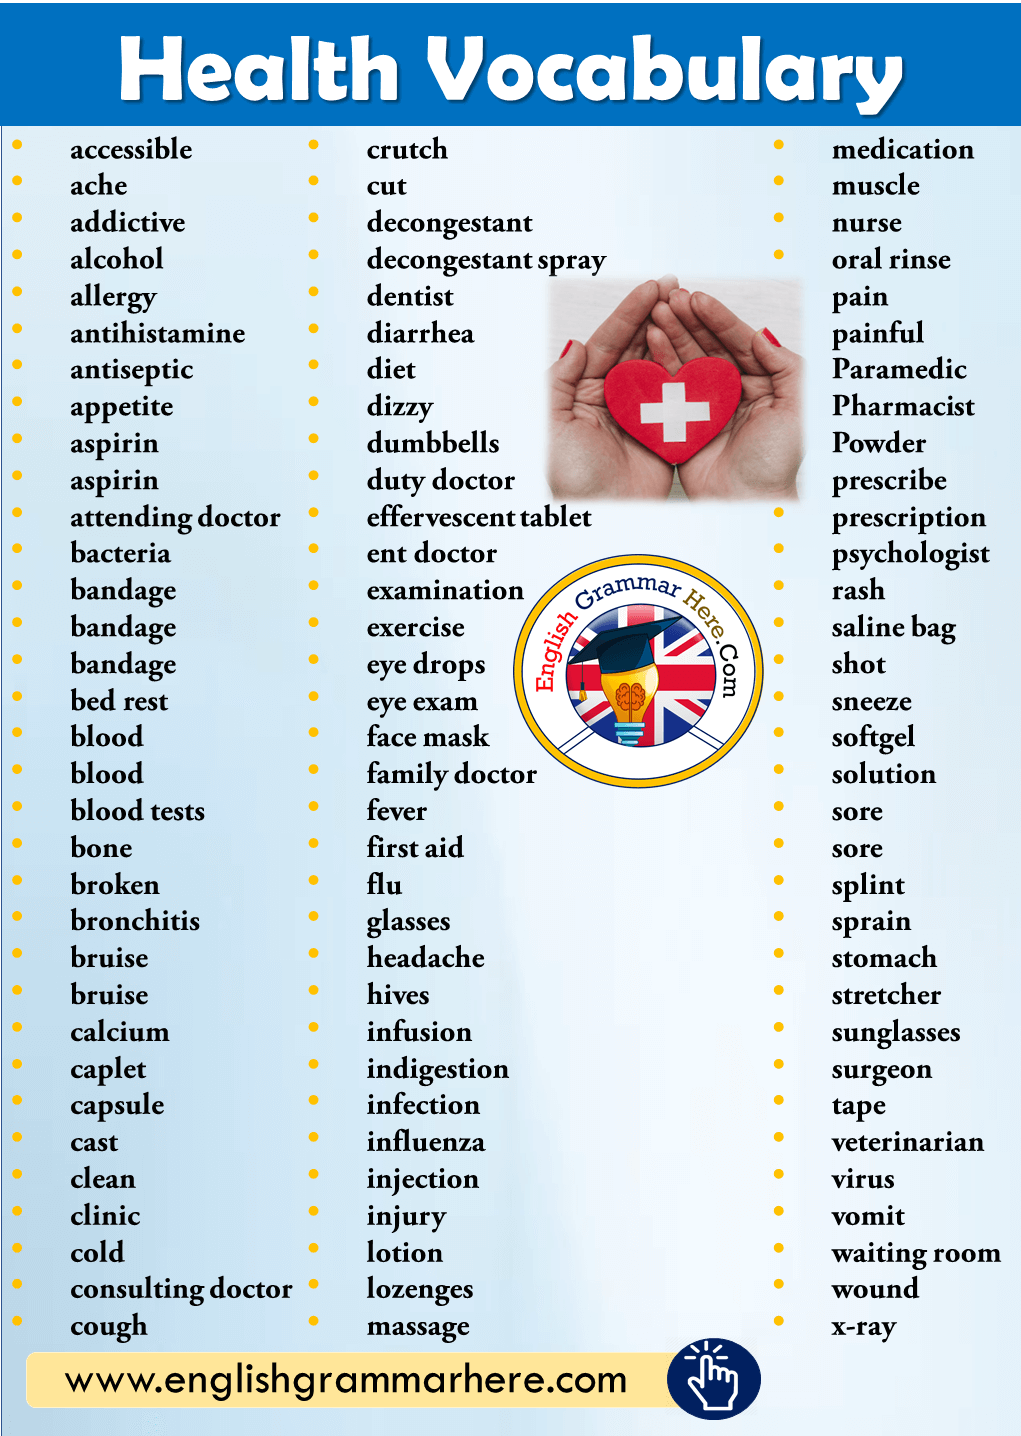 Health Vocabulary List